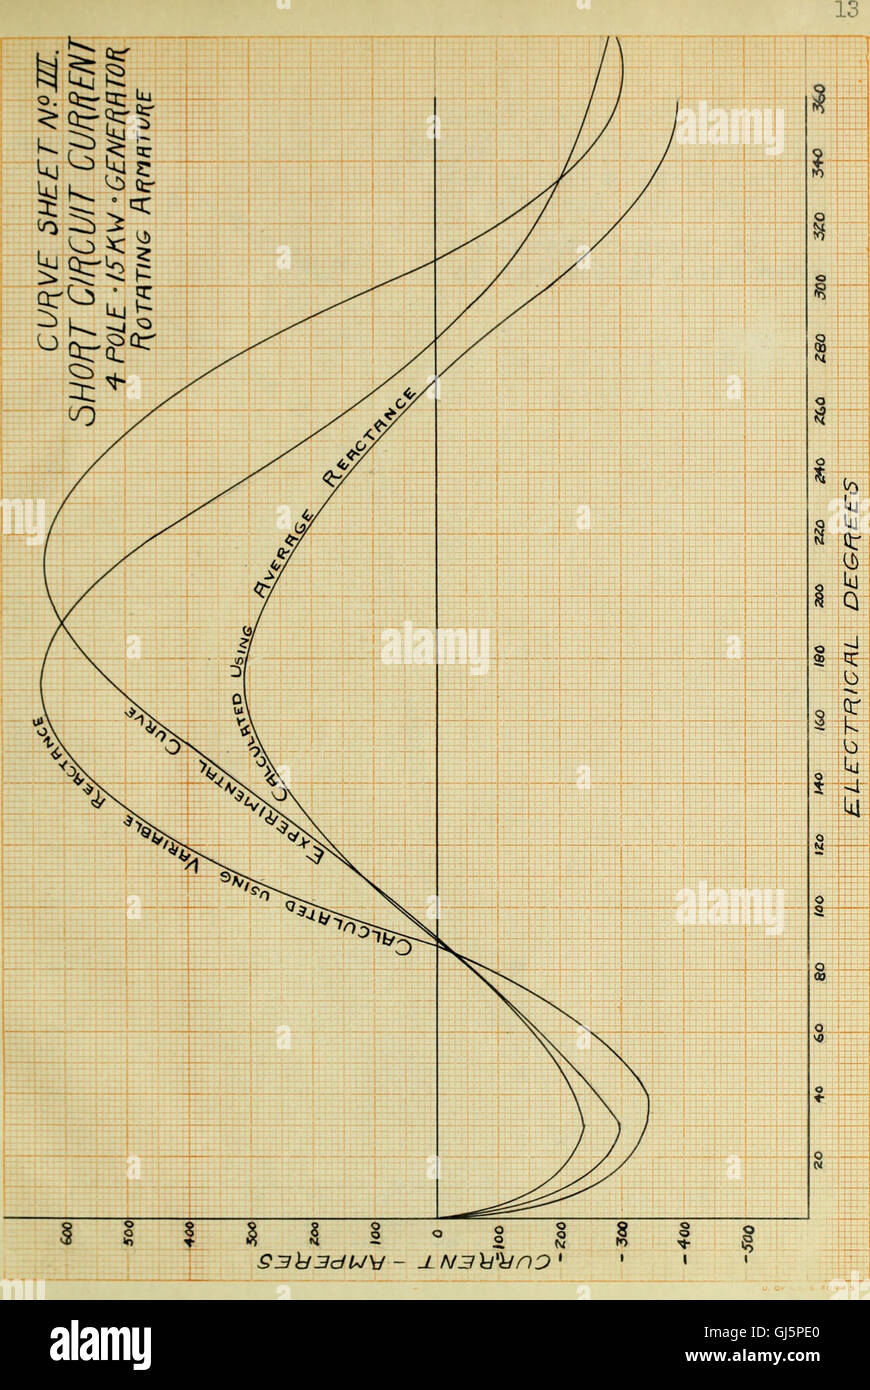 Short Circuit Stock Photos Images Page 2 Alamy Generator The Influence Of Varying Reactance Upon Phenomena In Alternators 1913